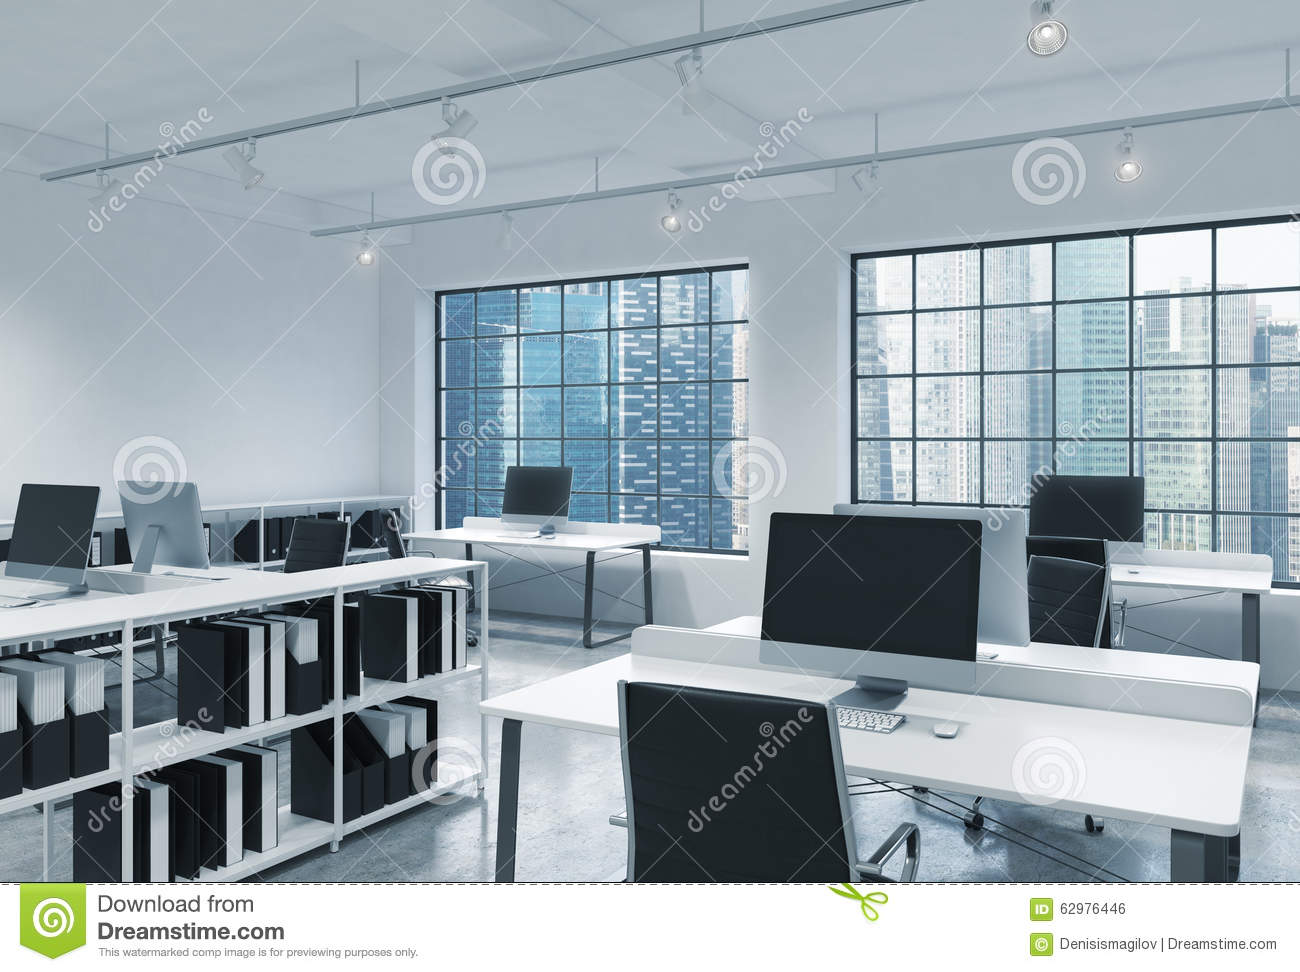 workplaces in a bright modern loft open space office tables are equipped with modern computers bright modern office space